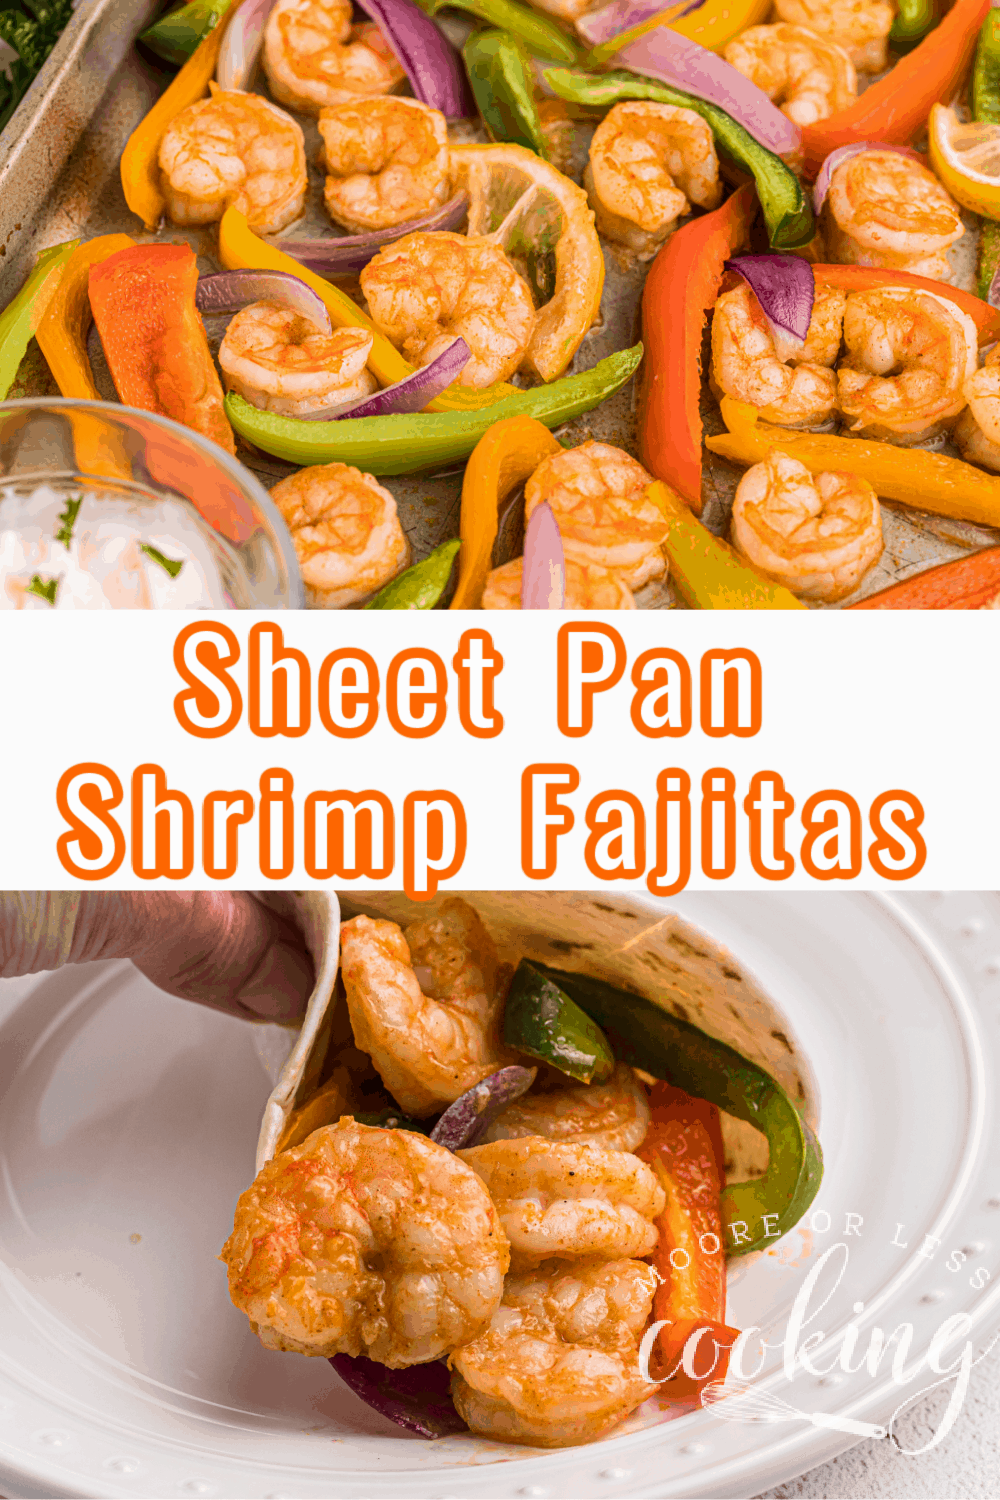 Sheet pan shrimp fajitas are a zesty and easy meal to make on busy weeknights. Ready in under 30 minutes, this Mexican-inspired sheet pan seafood recipe is a flavorful and healthy way to enjoy the combo of shrimp, onions, and peppers. via @Mooreorlesscook